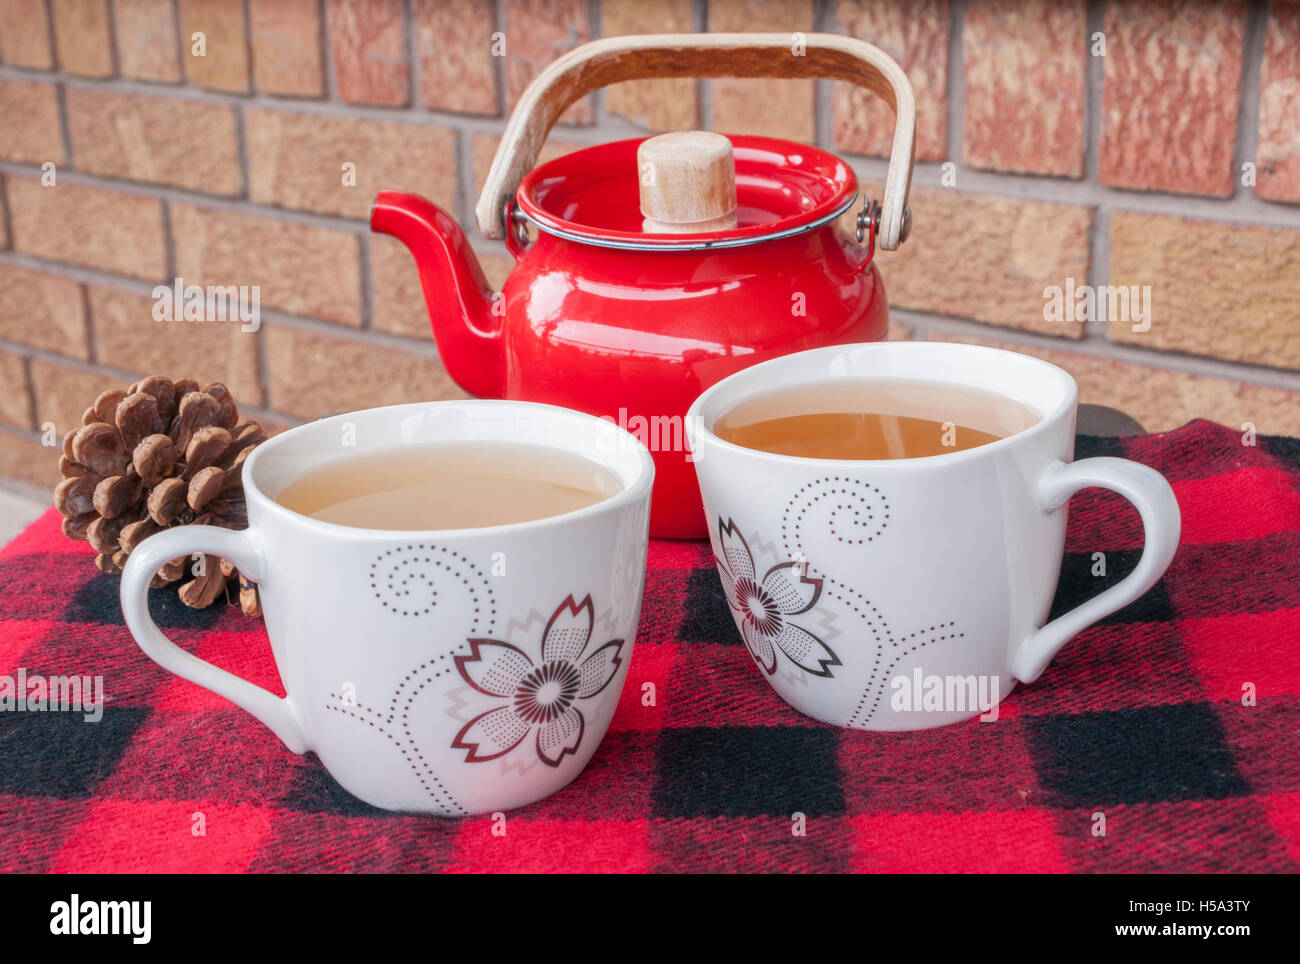 Two teacups on a cozy winter throw with red teapot and pinecone. - Stock Image